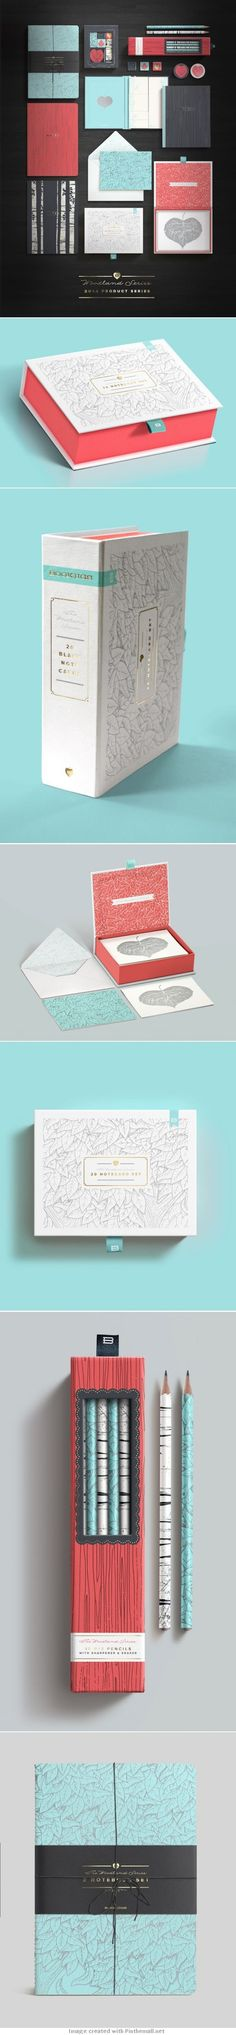 Bookjigs Woodland Product Line #identity #packaging #branding PD